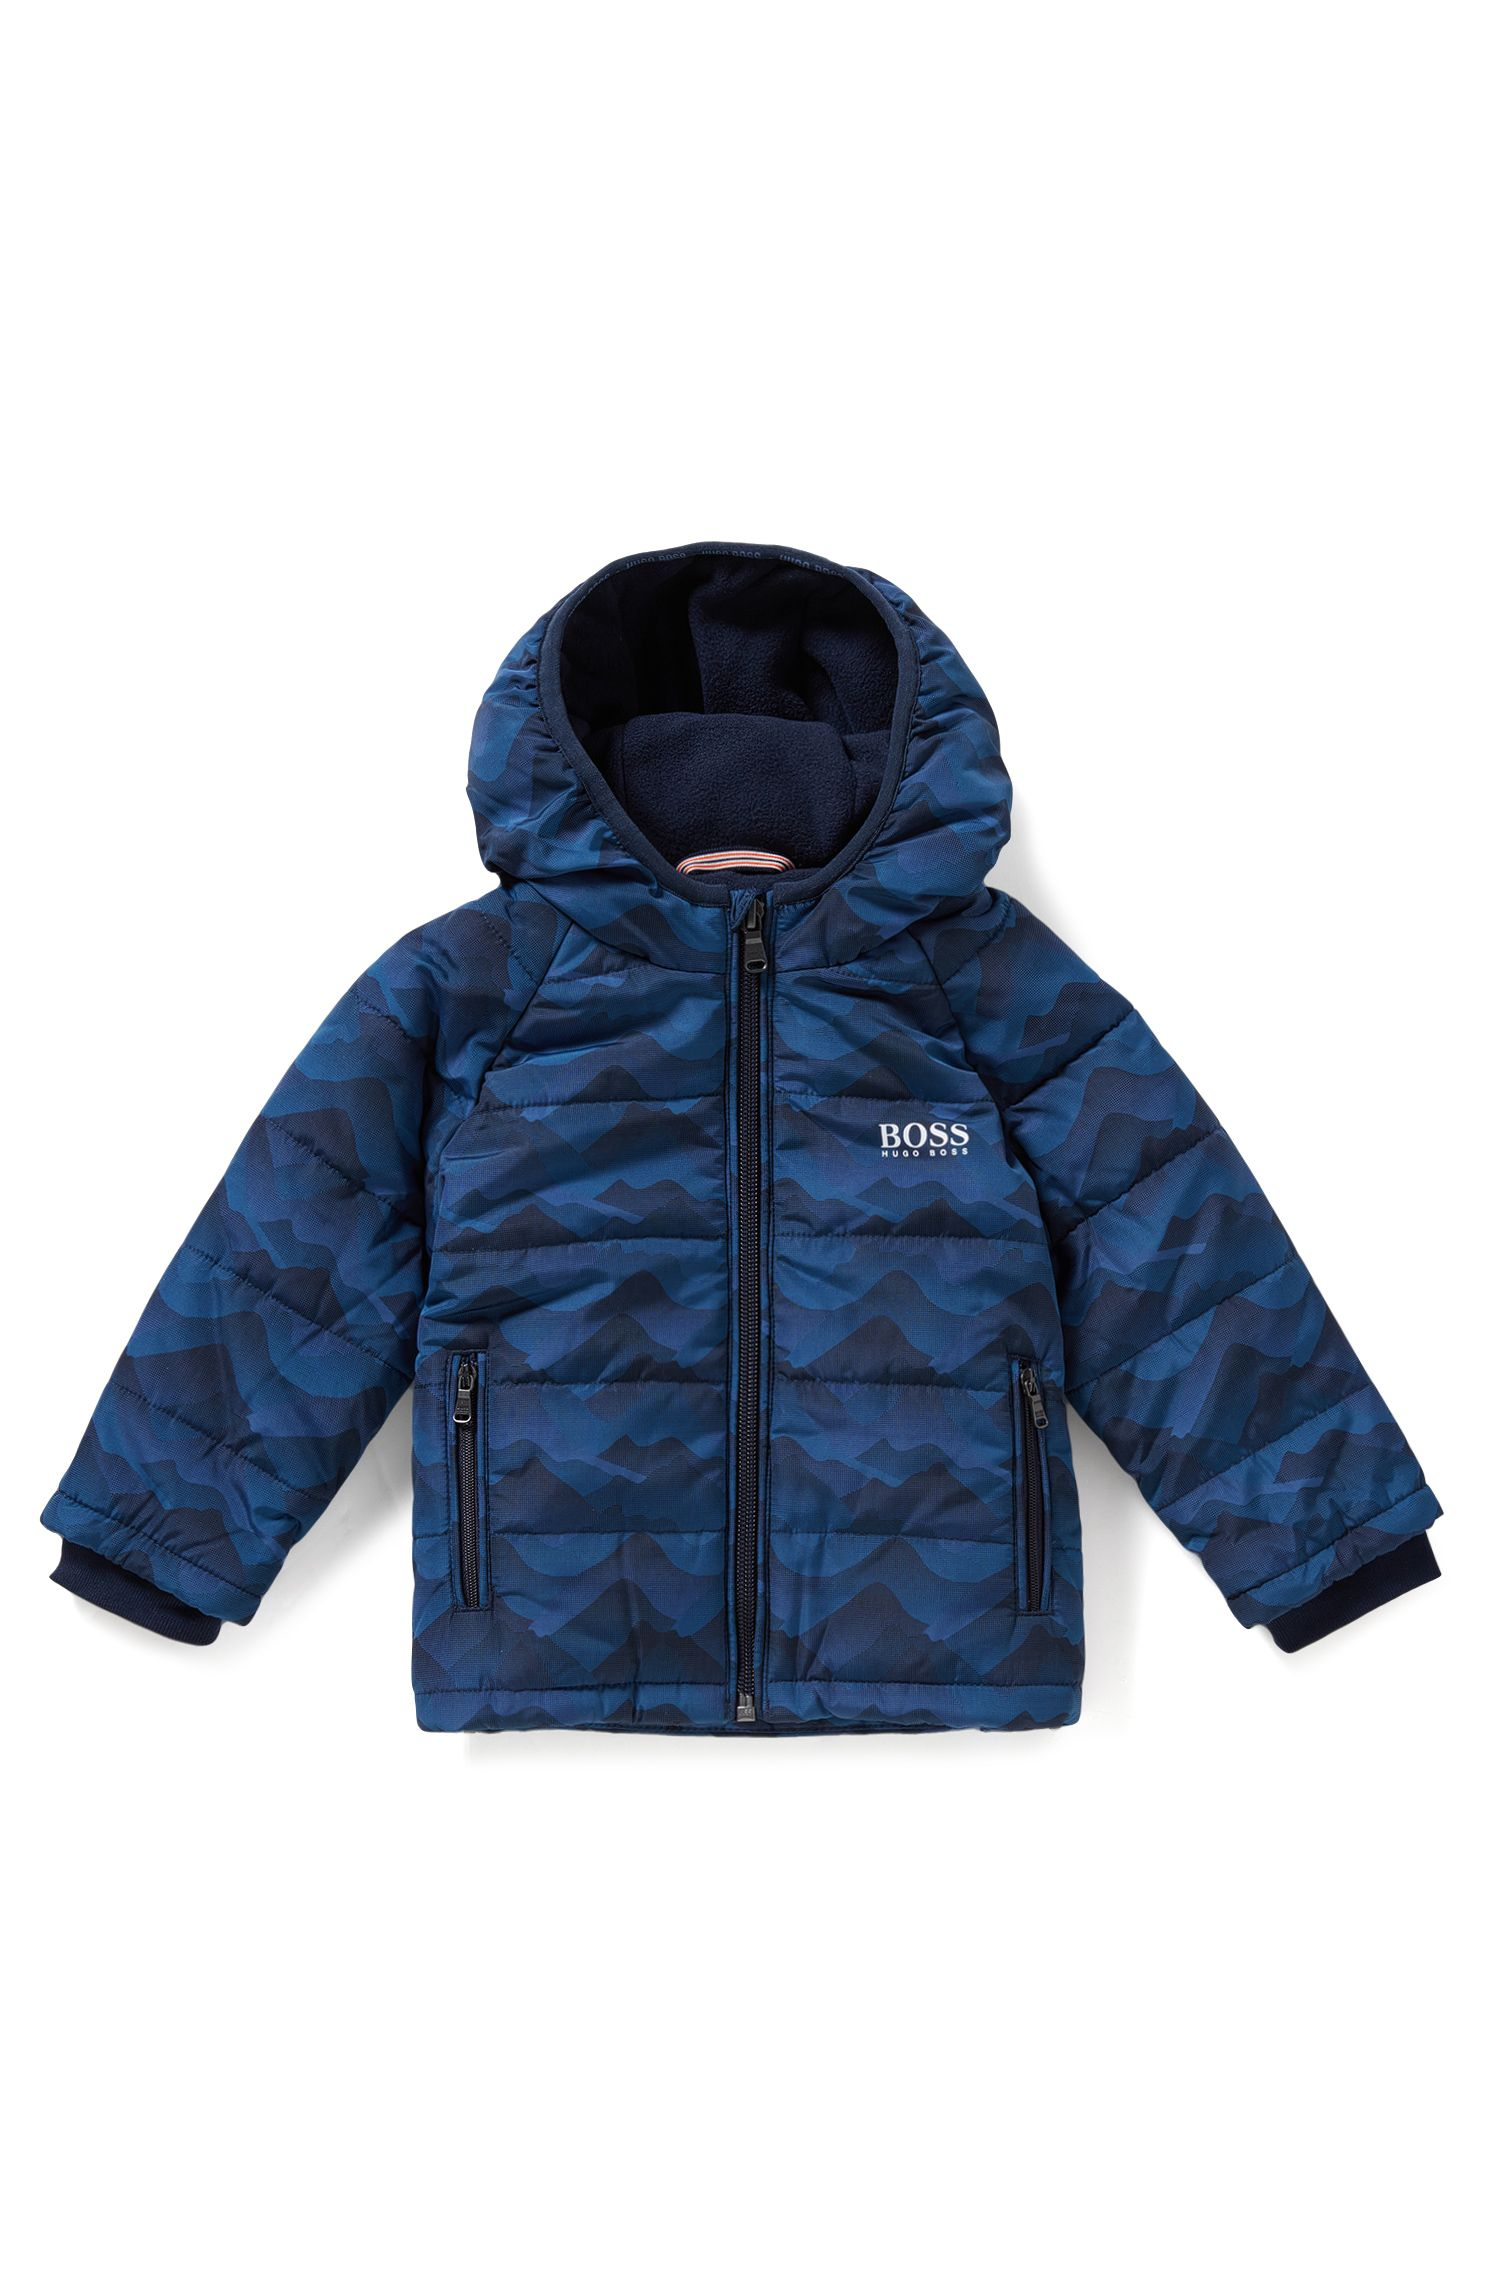 Kids' padded jacket in a regular fit